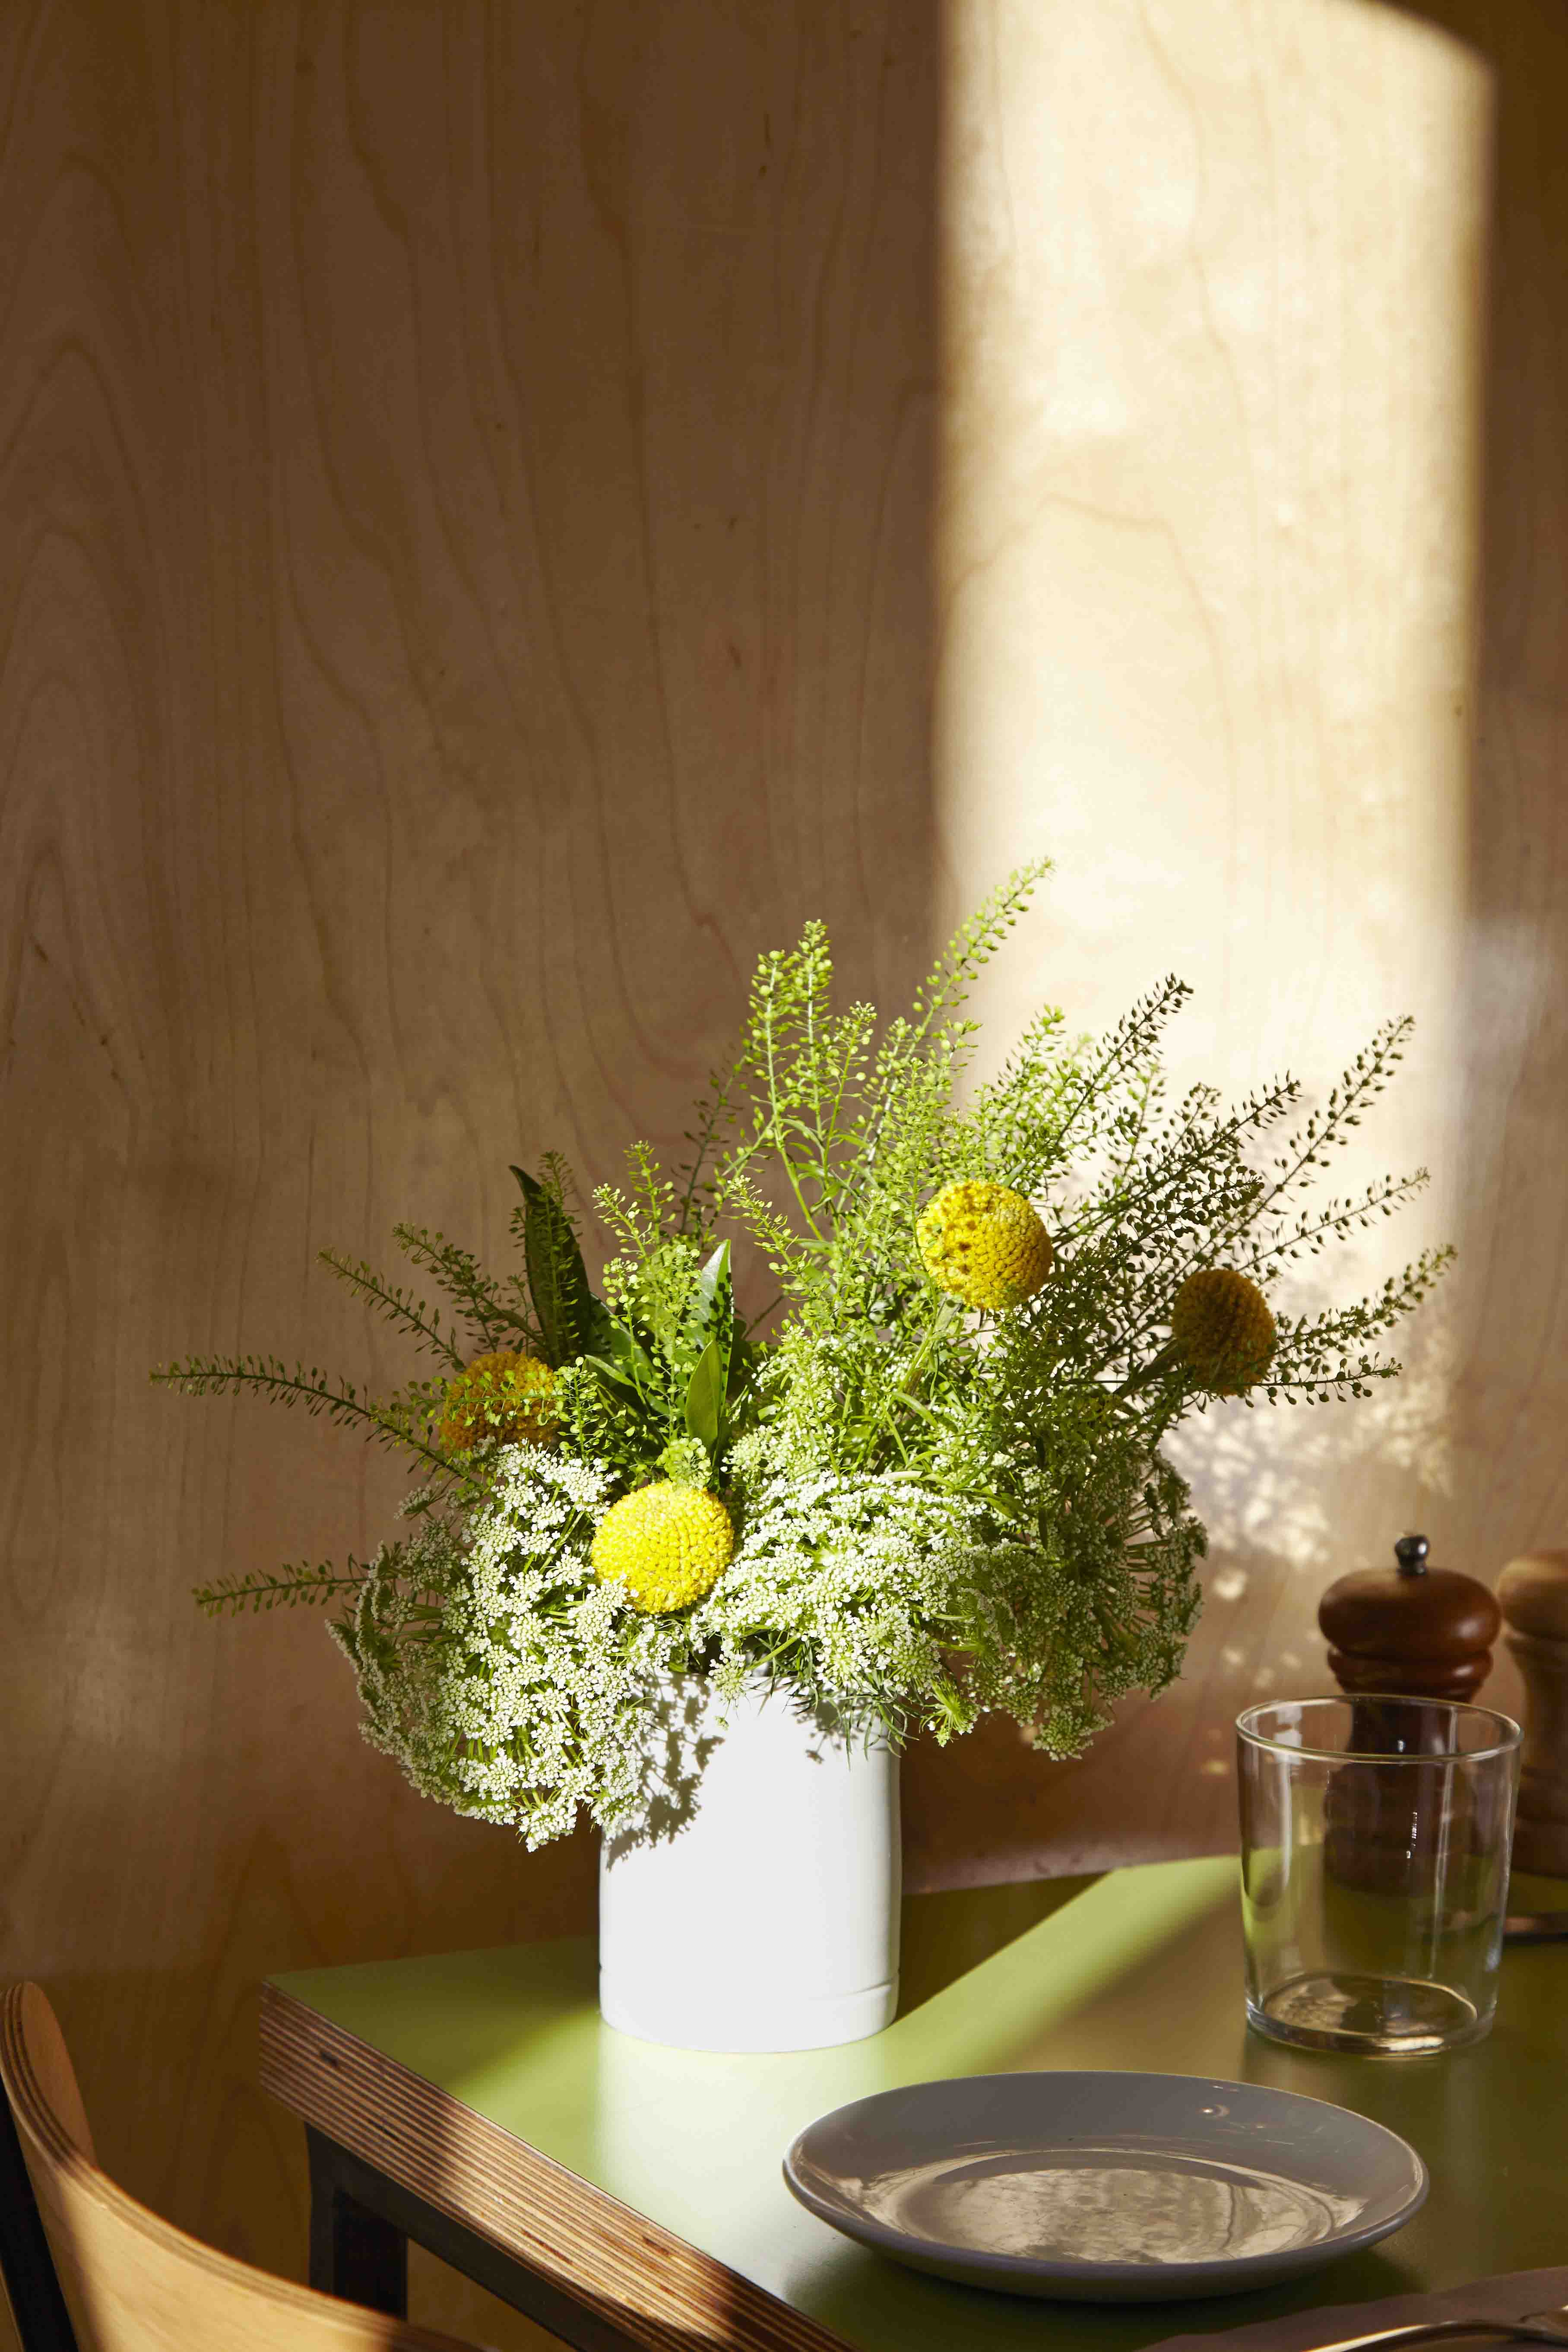 Wooden shelf with flowers in white vase on green table.